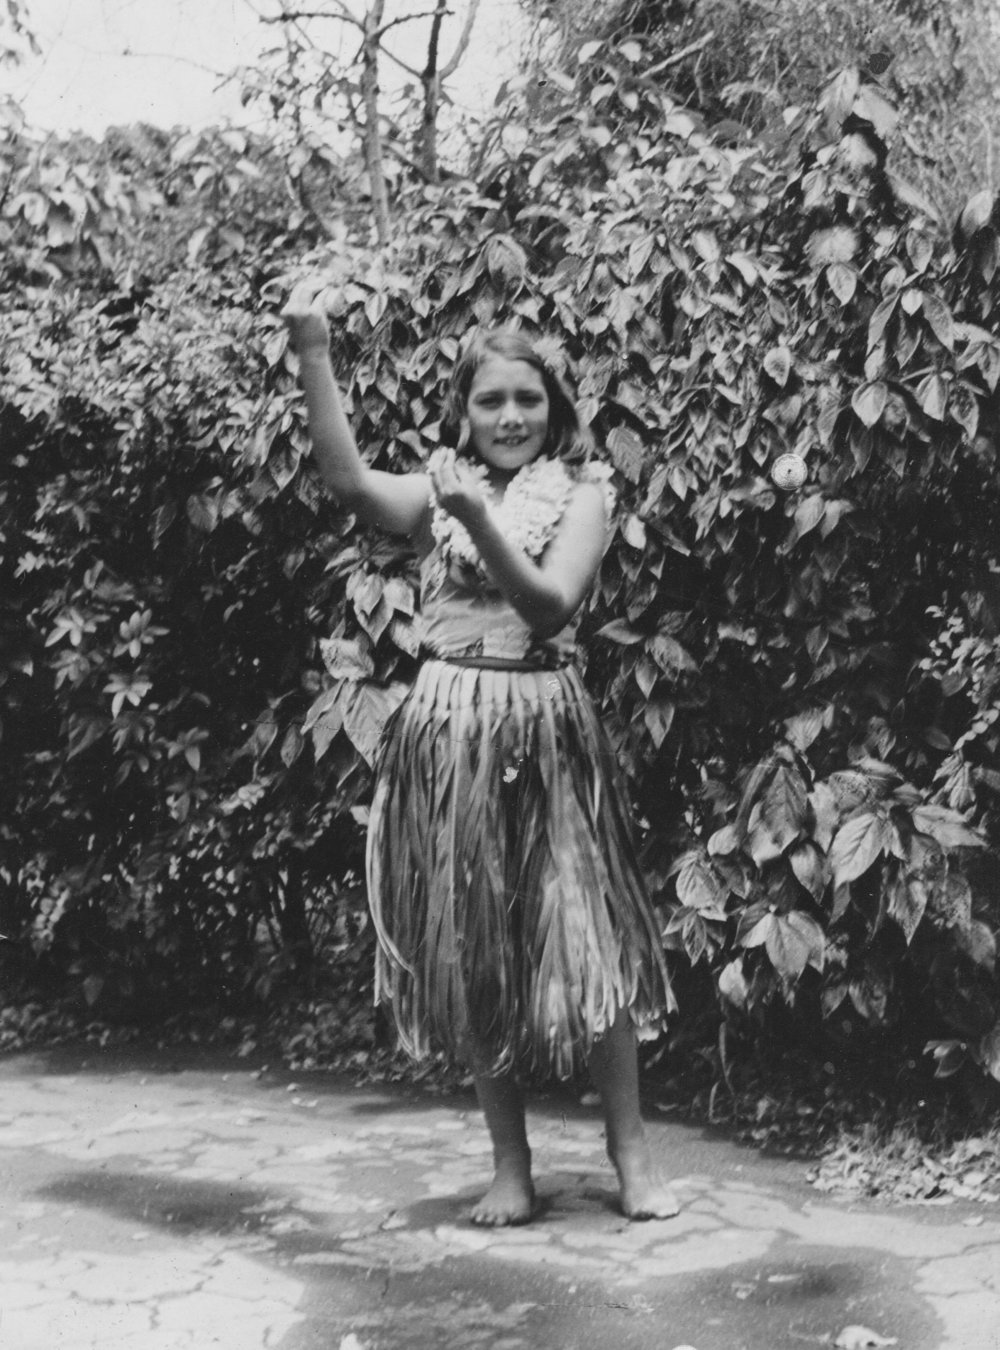 Lessons from My Mother - Not everyone has a picture of their Mother in a grass skirt. I think she's 12 in this photo.My Mother, Margaret Mildred Berge, was born in 1928, a half-breed Japanese-American from Honolulu, Hawaii – had an eighth grade education. Yet she could zip through the daily crossword like a Wellesley graduate, having expanded her vocabulary by looking up the words in an old black Funk and Wagnall's dictionary that was never far from the kitchen table where she sat in the mornings, dressed in a well-worn, blue and white cotton kimono.For most of my life she was the only woman I knew who survived a bombing, having been 12 or 13 at the Japanese attack on Pearl Harbor on December 7th, 1941.She was quite beautiful, dark eyed, raven-black hair, high cheek-bones and breasts coveted by every man who knew her. She was a great dancer, a voracious reader and a quick study with intelligence far beyond her formal education. She was a factory worker for most of her life. Starting at a Dynacolor plant in Brockport, NY where she spent 8-hour days mostly in the dark packing film canisters, I think. Then to the Owens-Illinois glass plant where she and dozens of other local women got jobs and worked on the line. When they figured out they were being paid for less than the men doing the same job, they took their grievances to management.